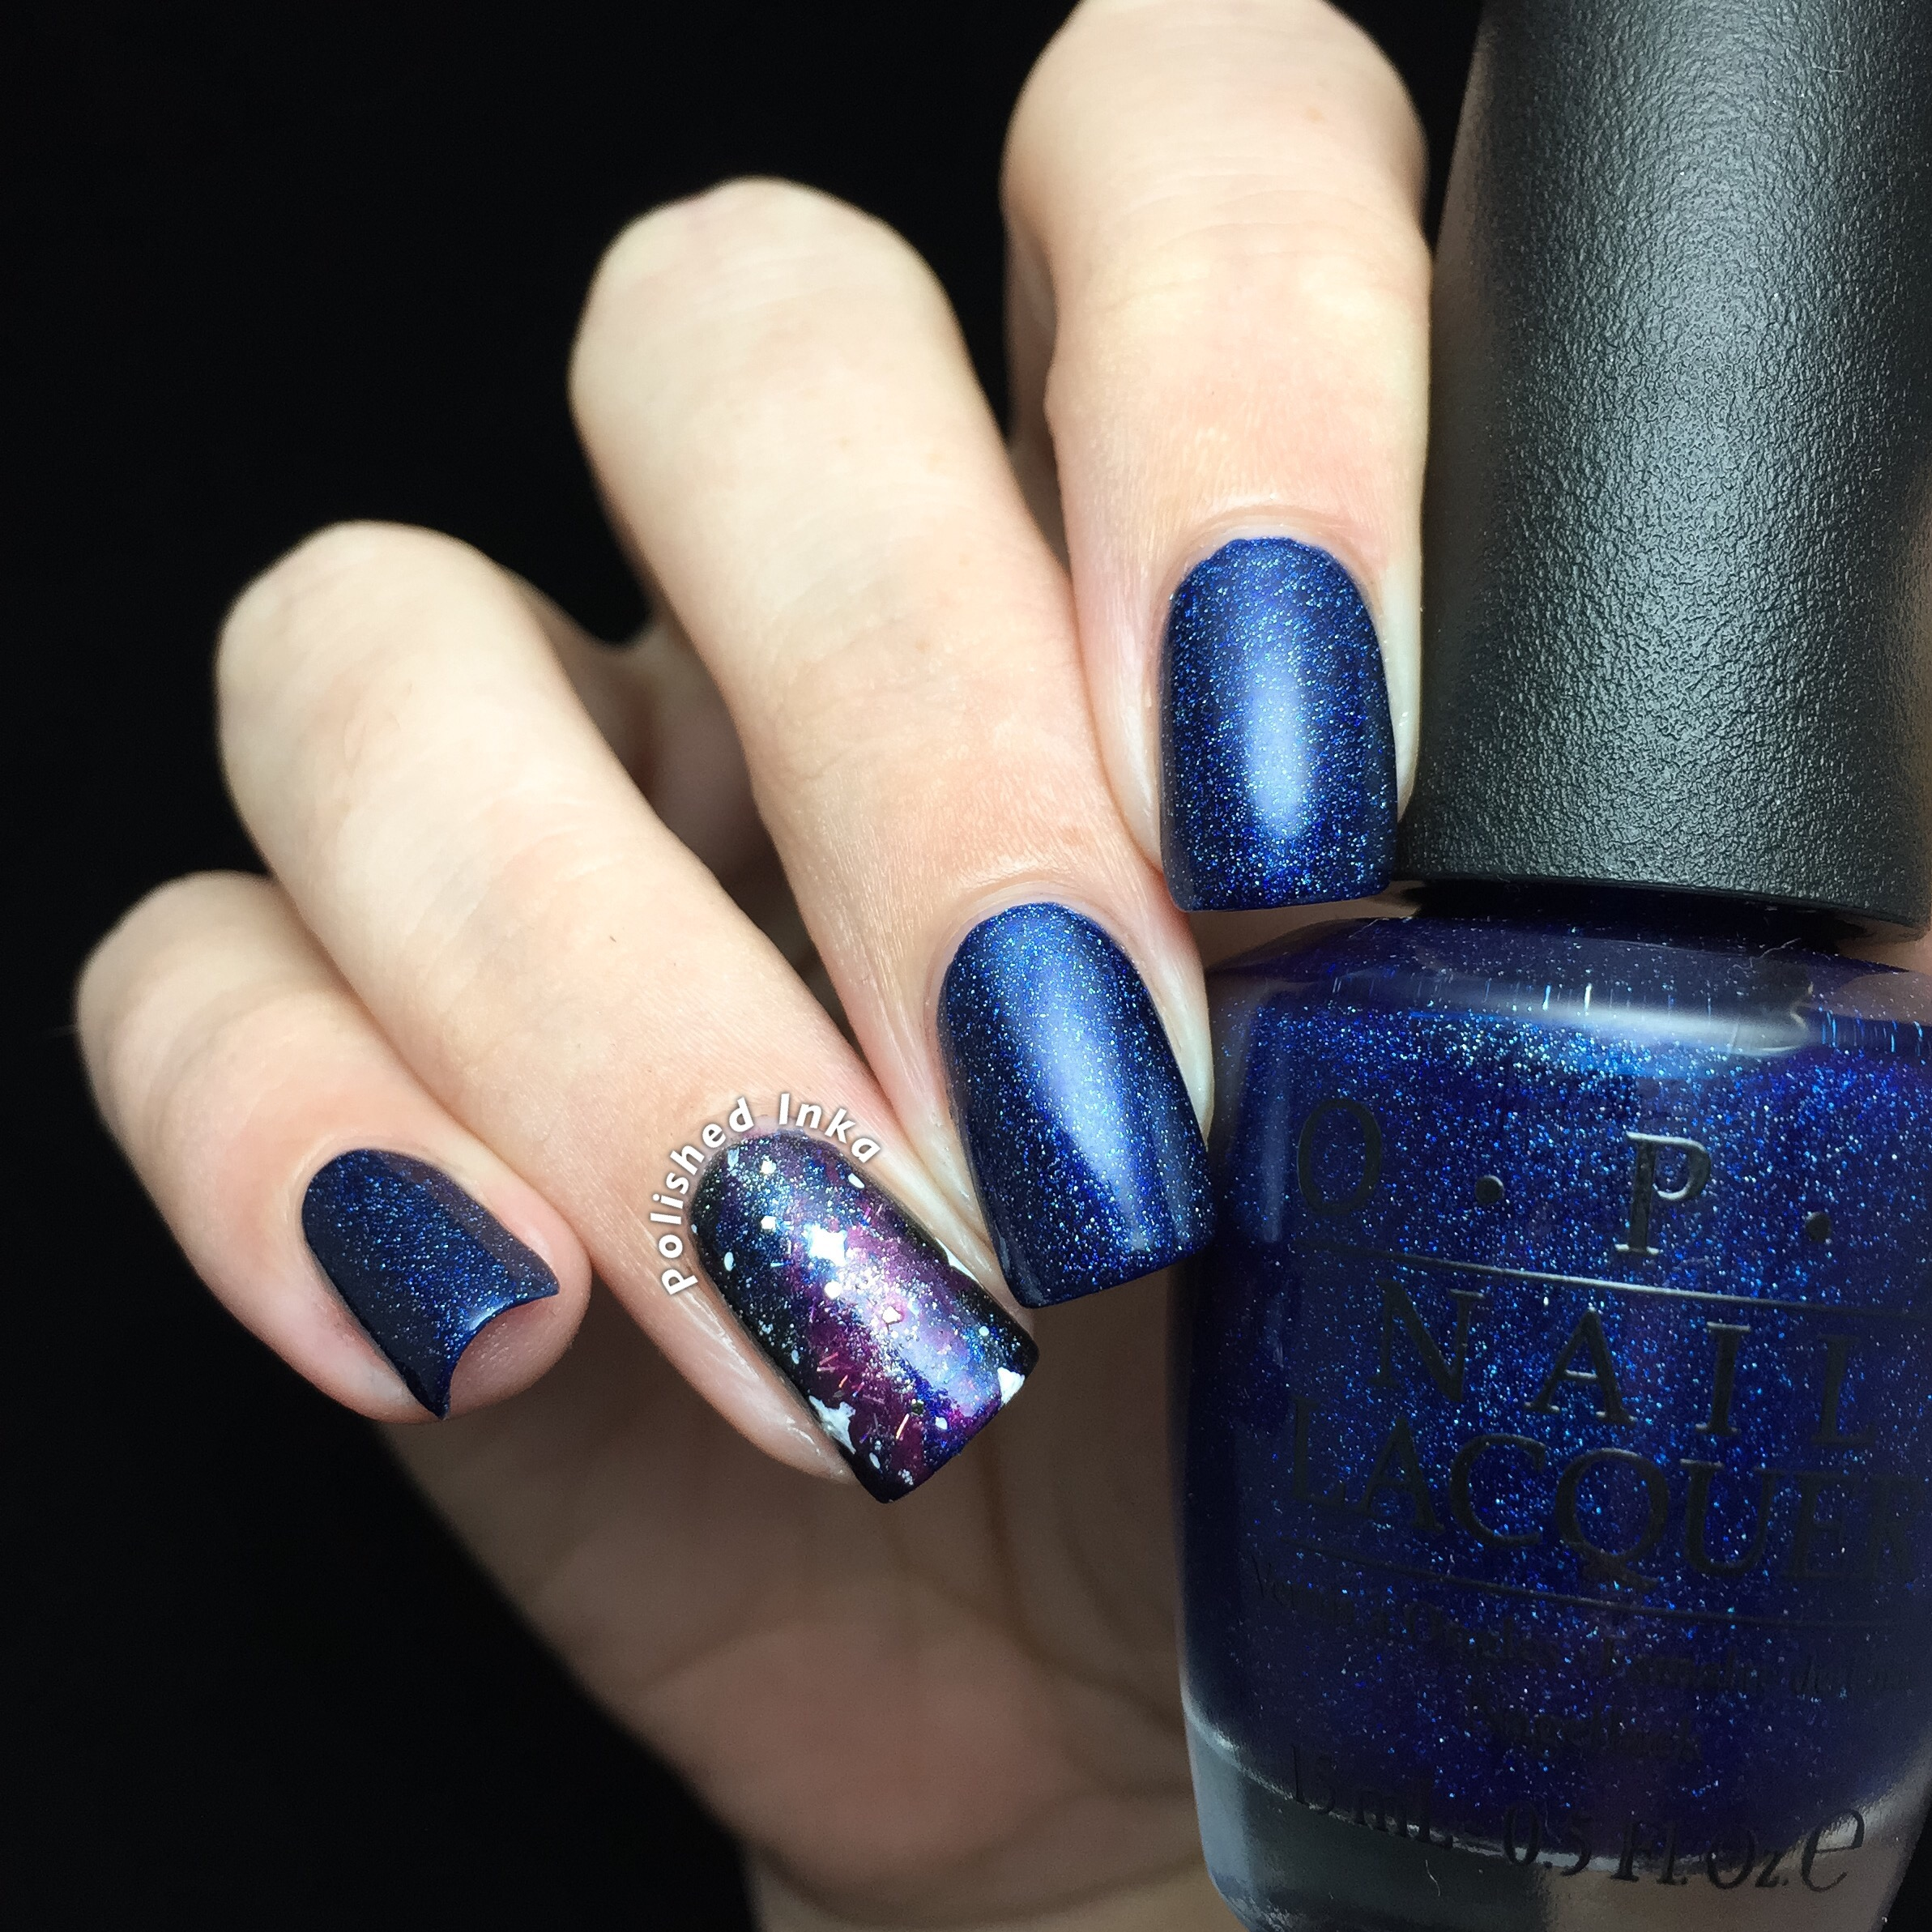 OPI Starlight Collection Christmas 2015 Give Me Space Swatch